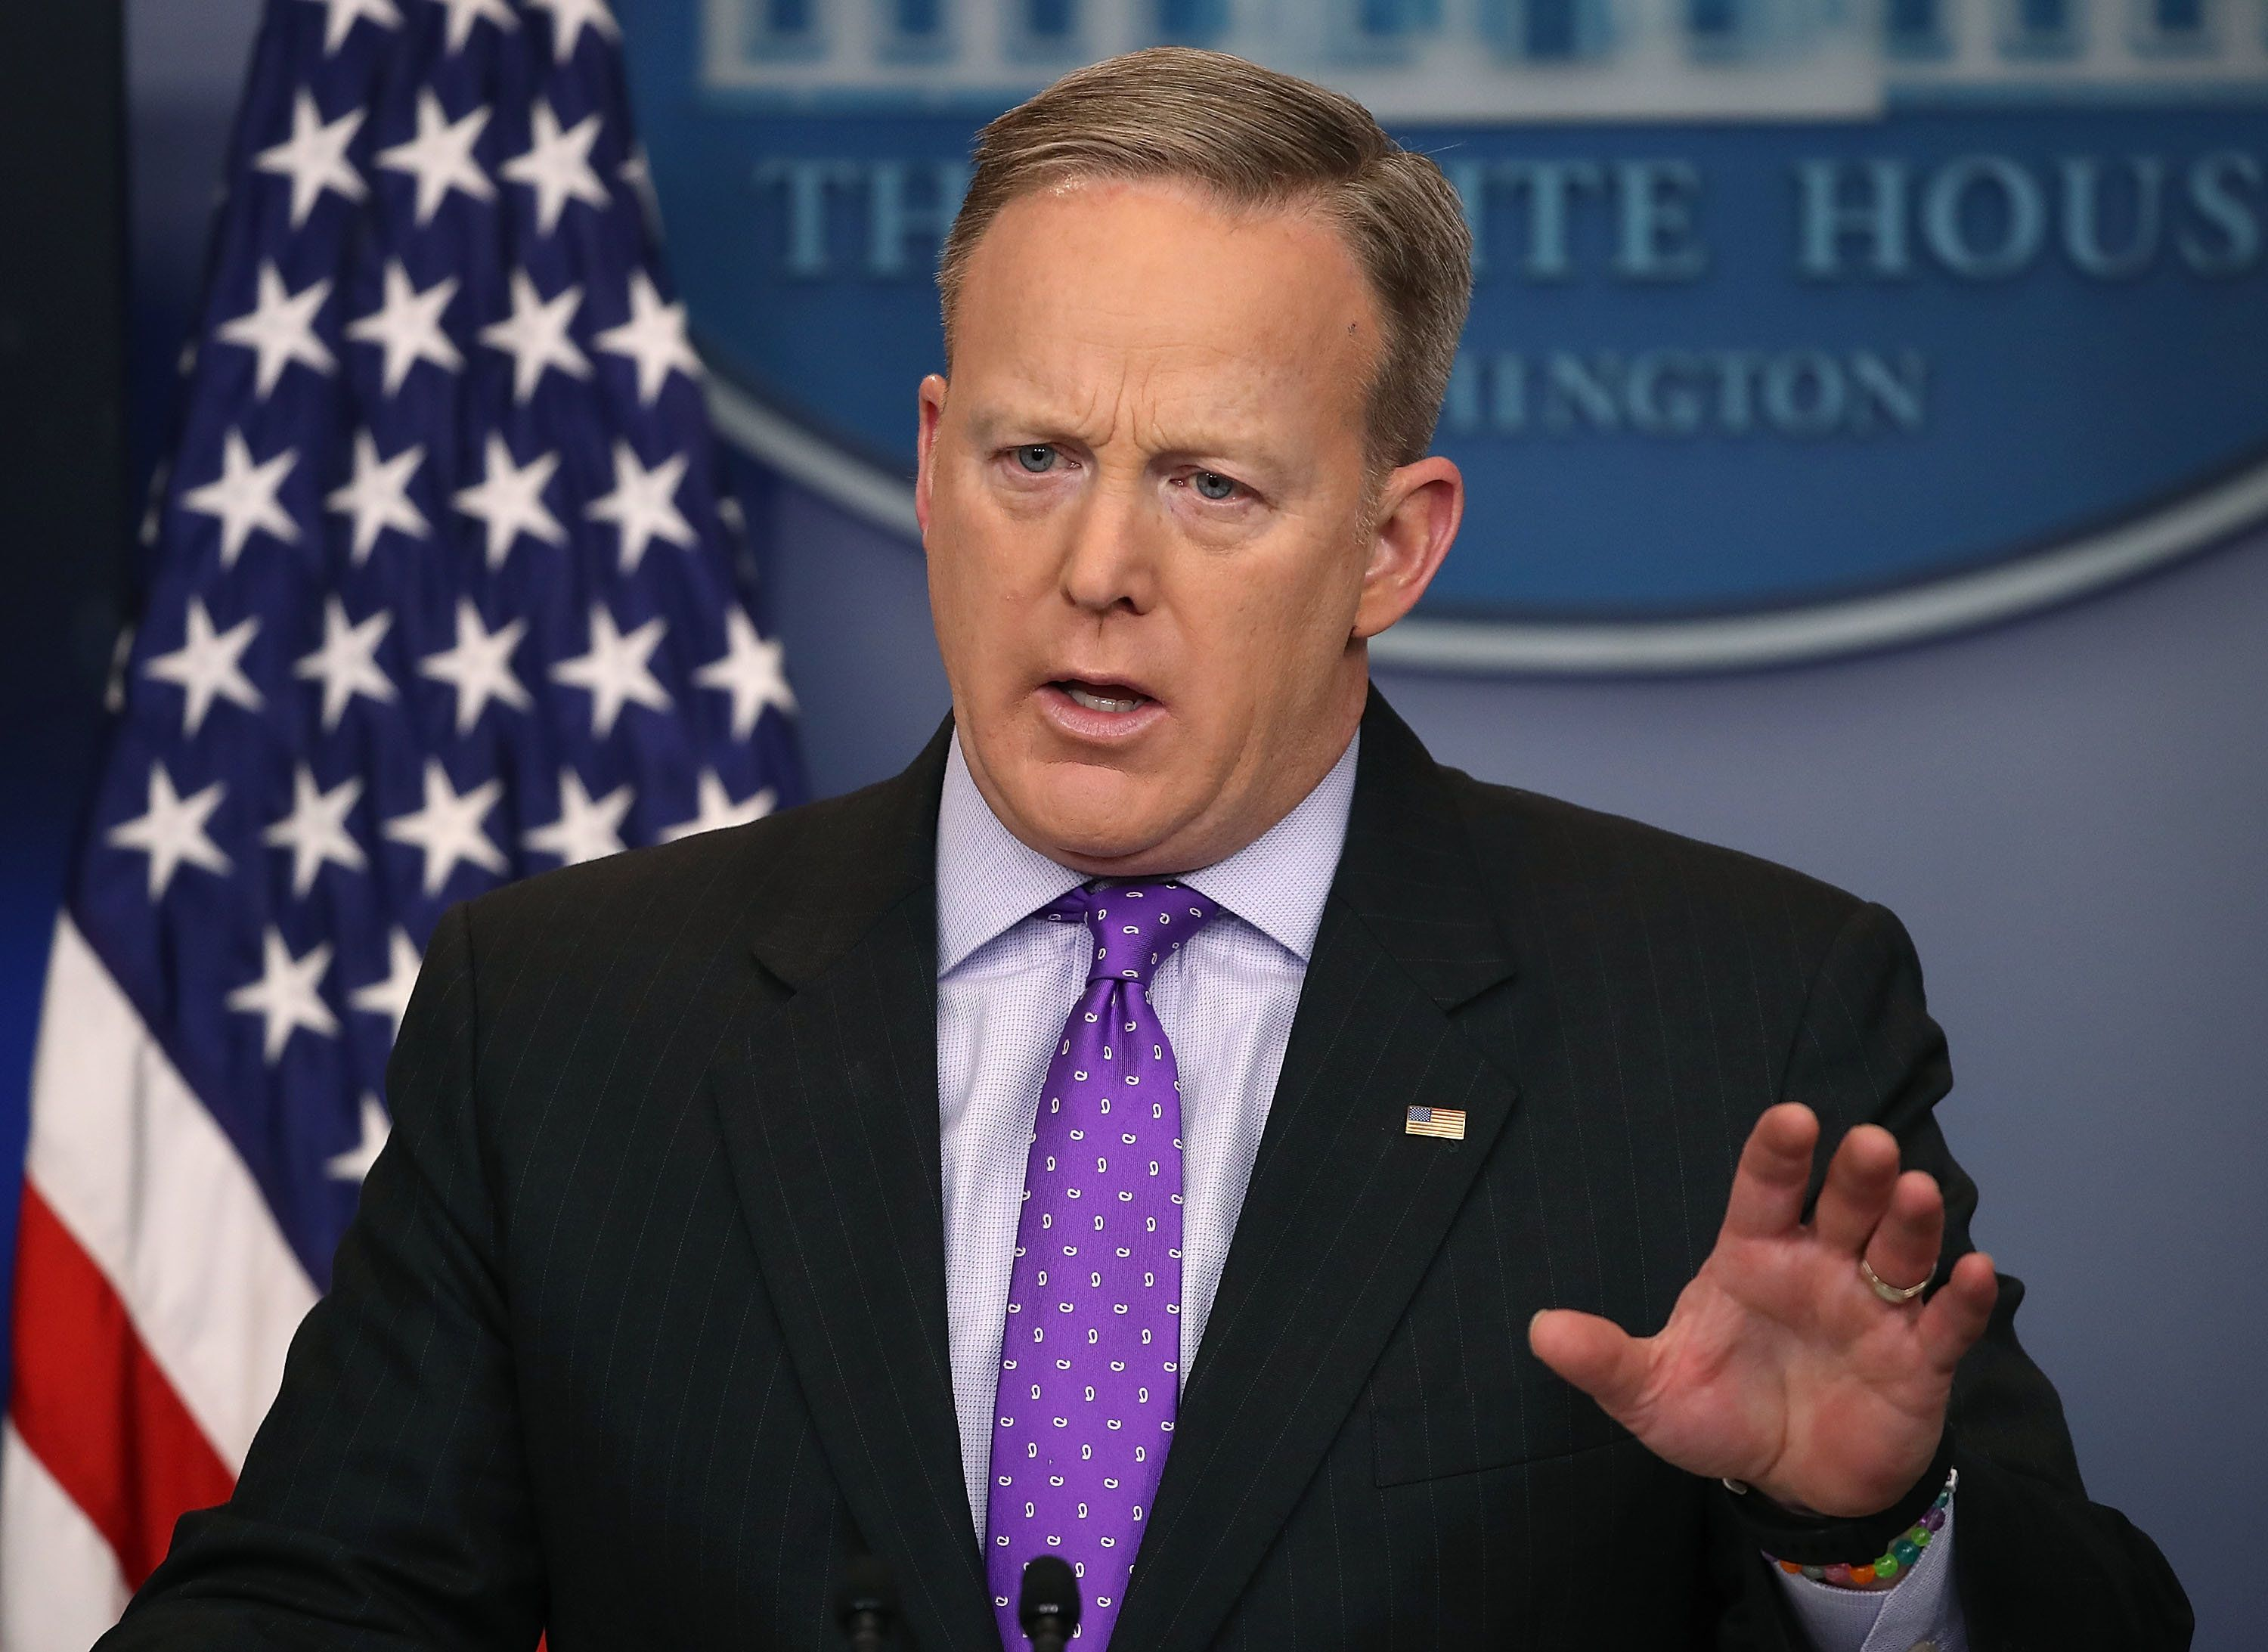 White House Press Secretary Sean Spicer takes questions from reporters during the daily press briefing at the White House Feb